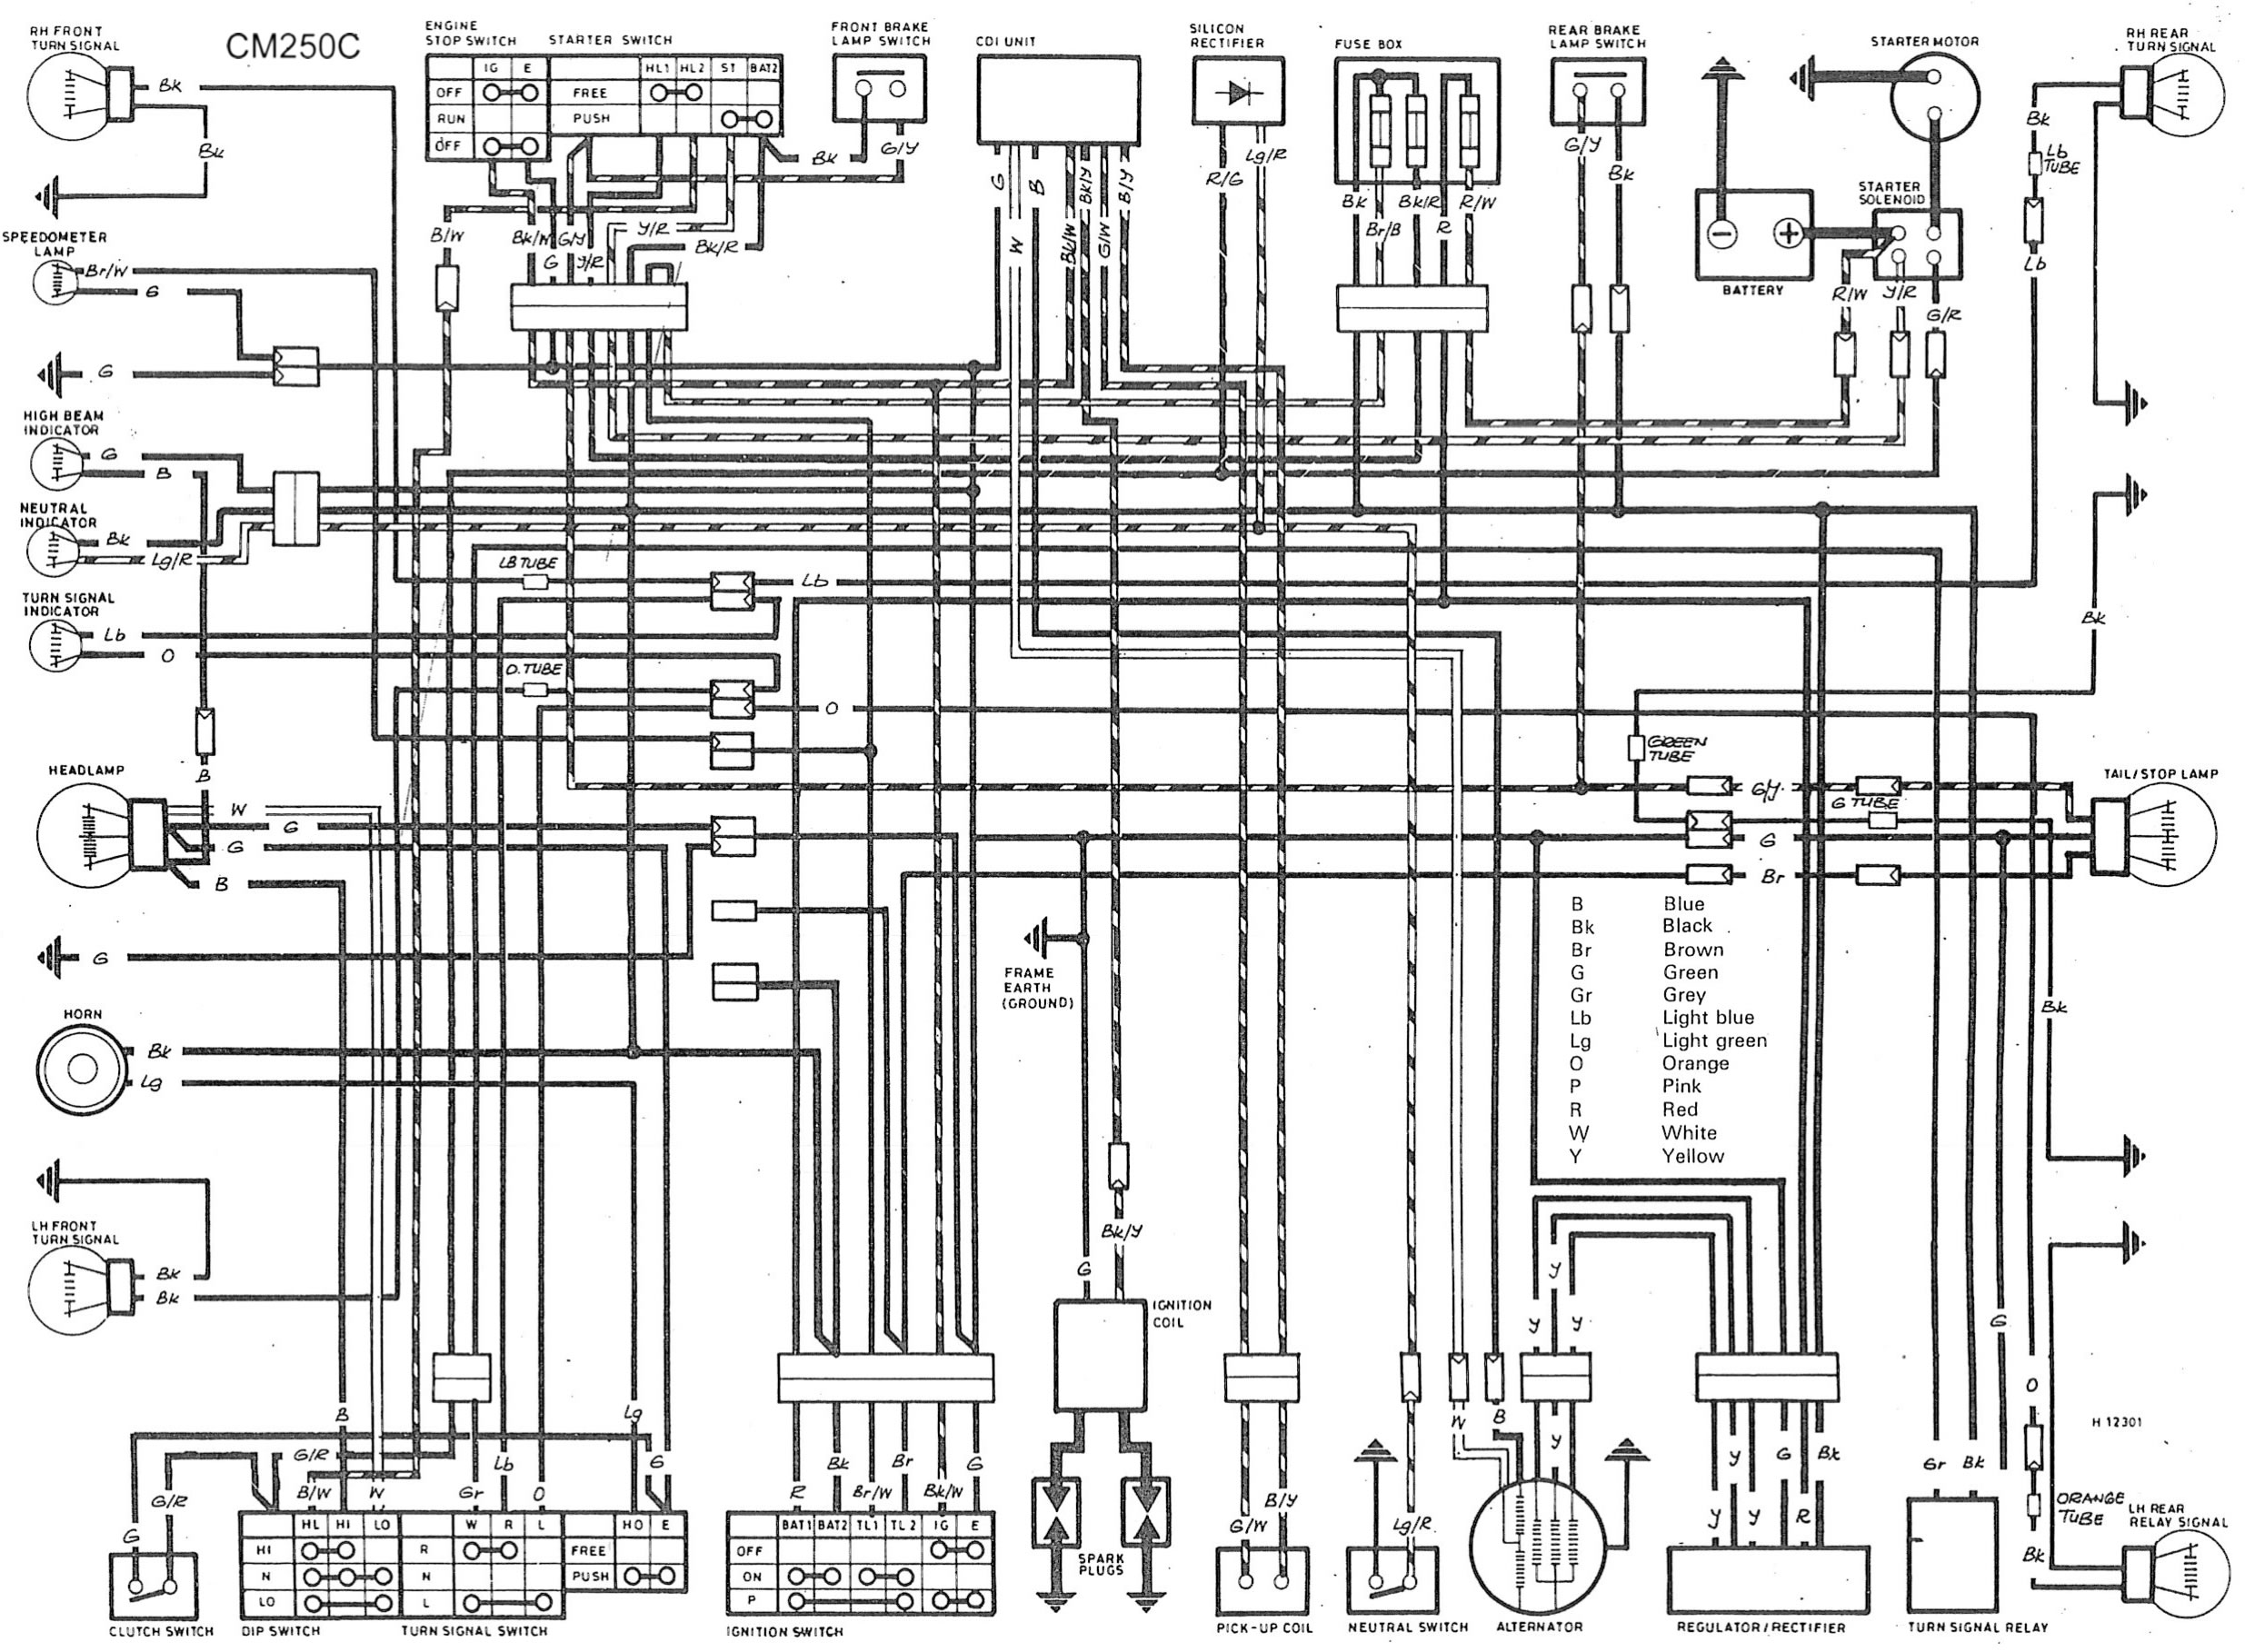 wirediagram jpg 1987 honda rebel 250 wiring diagram wiring diagrams and schematics simple turn signal diagram please honda